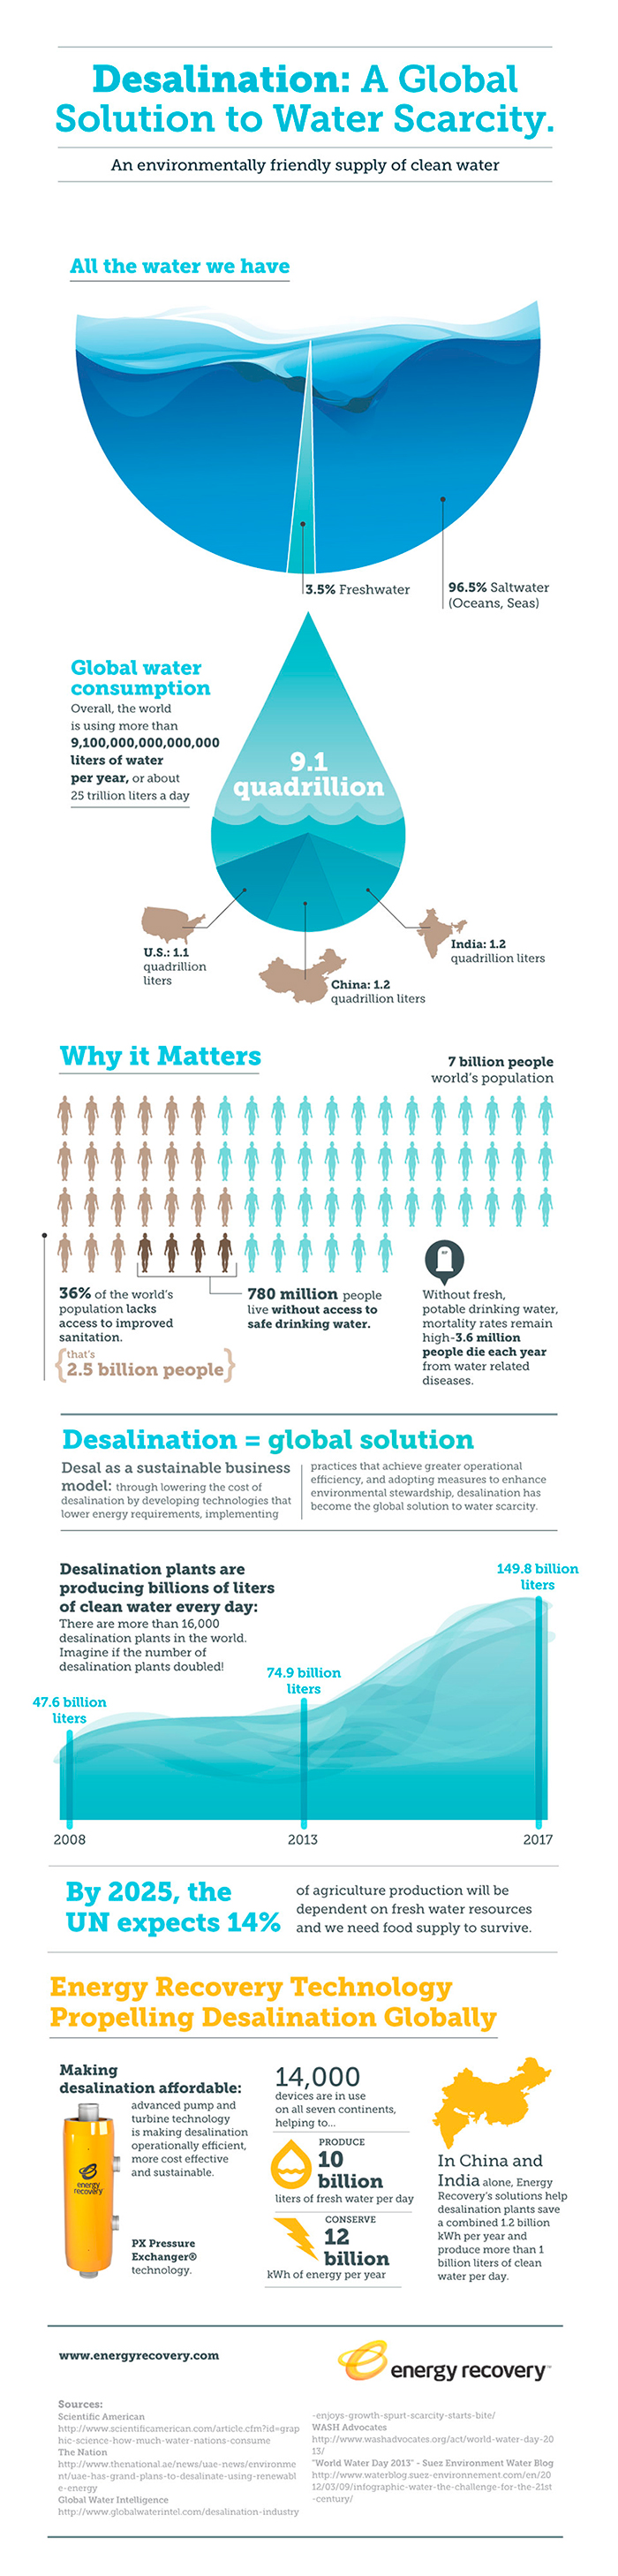 Desalination A Global Solution to Water Scarcity